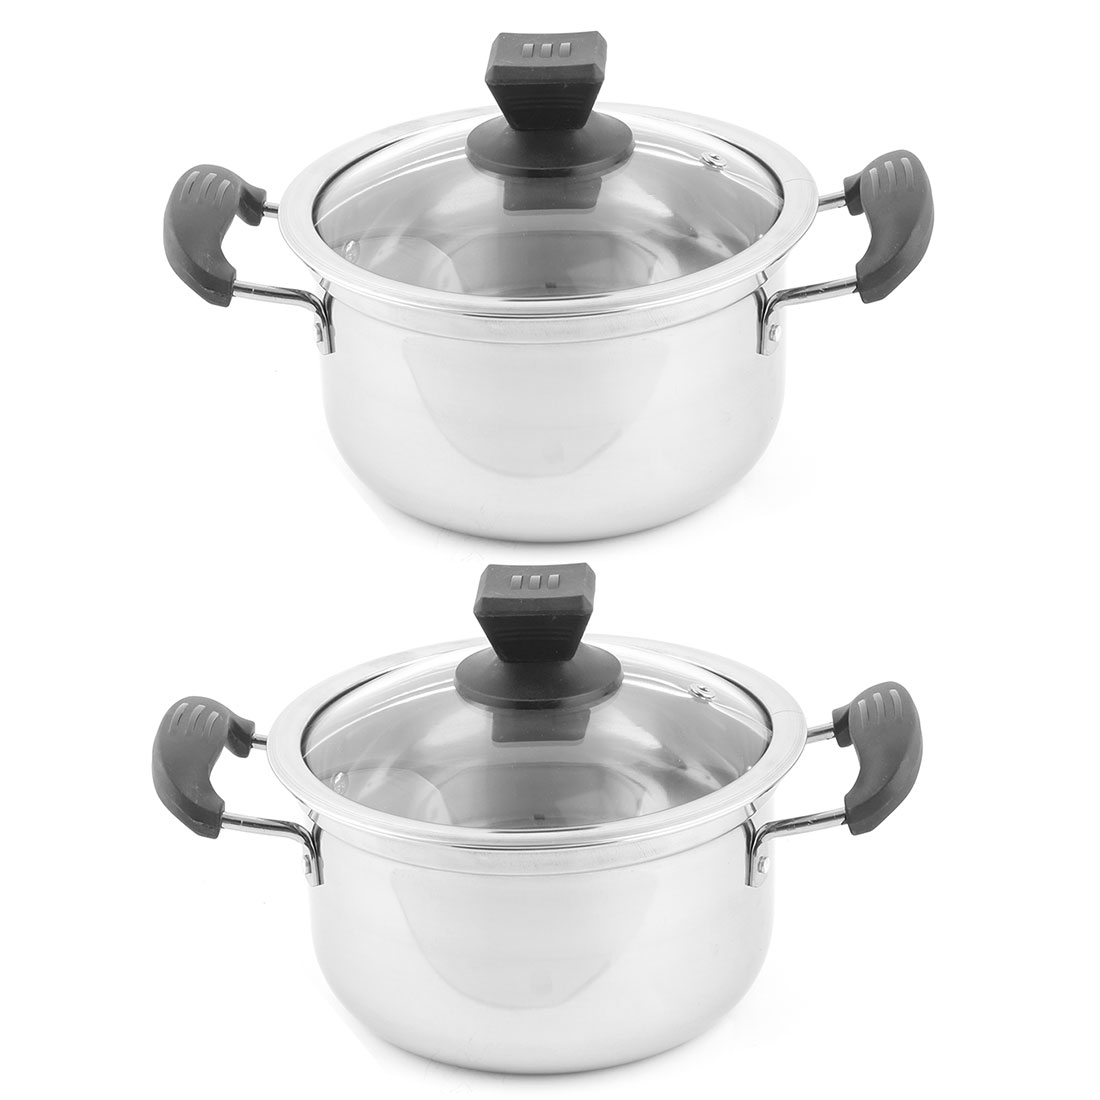 Home Kitchen Stainless Steel Soup Container Stockpot Pot Cooking Tool 20cm Dia 2pcs